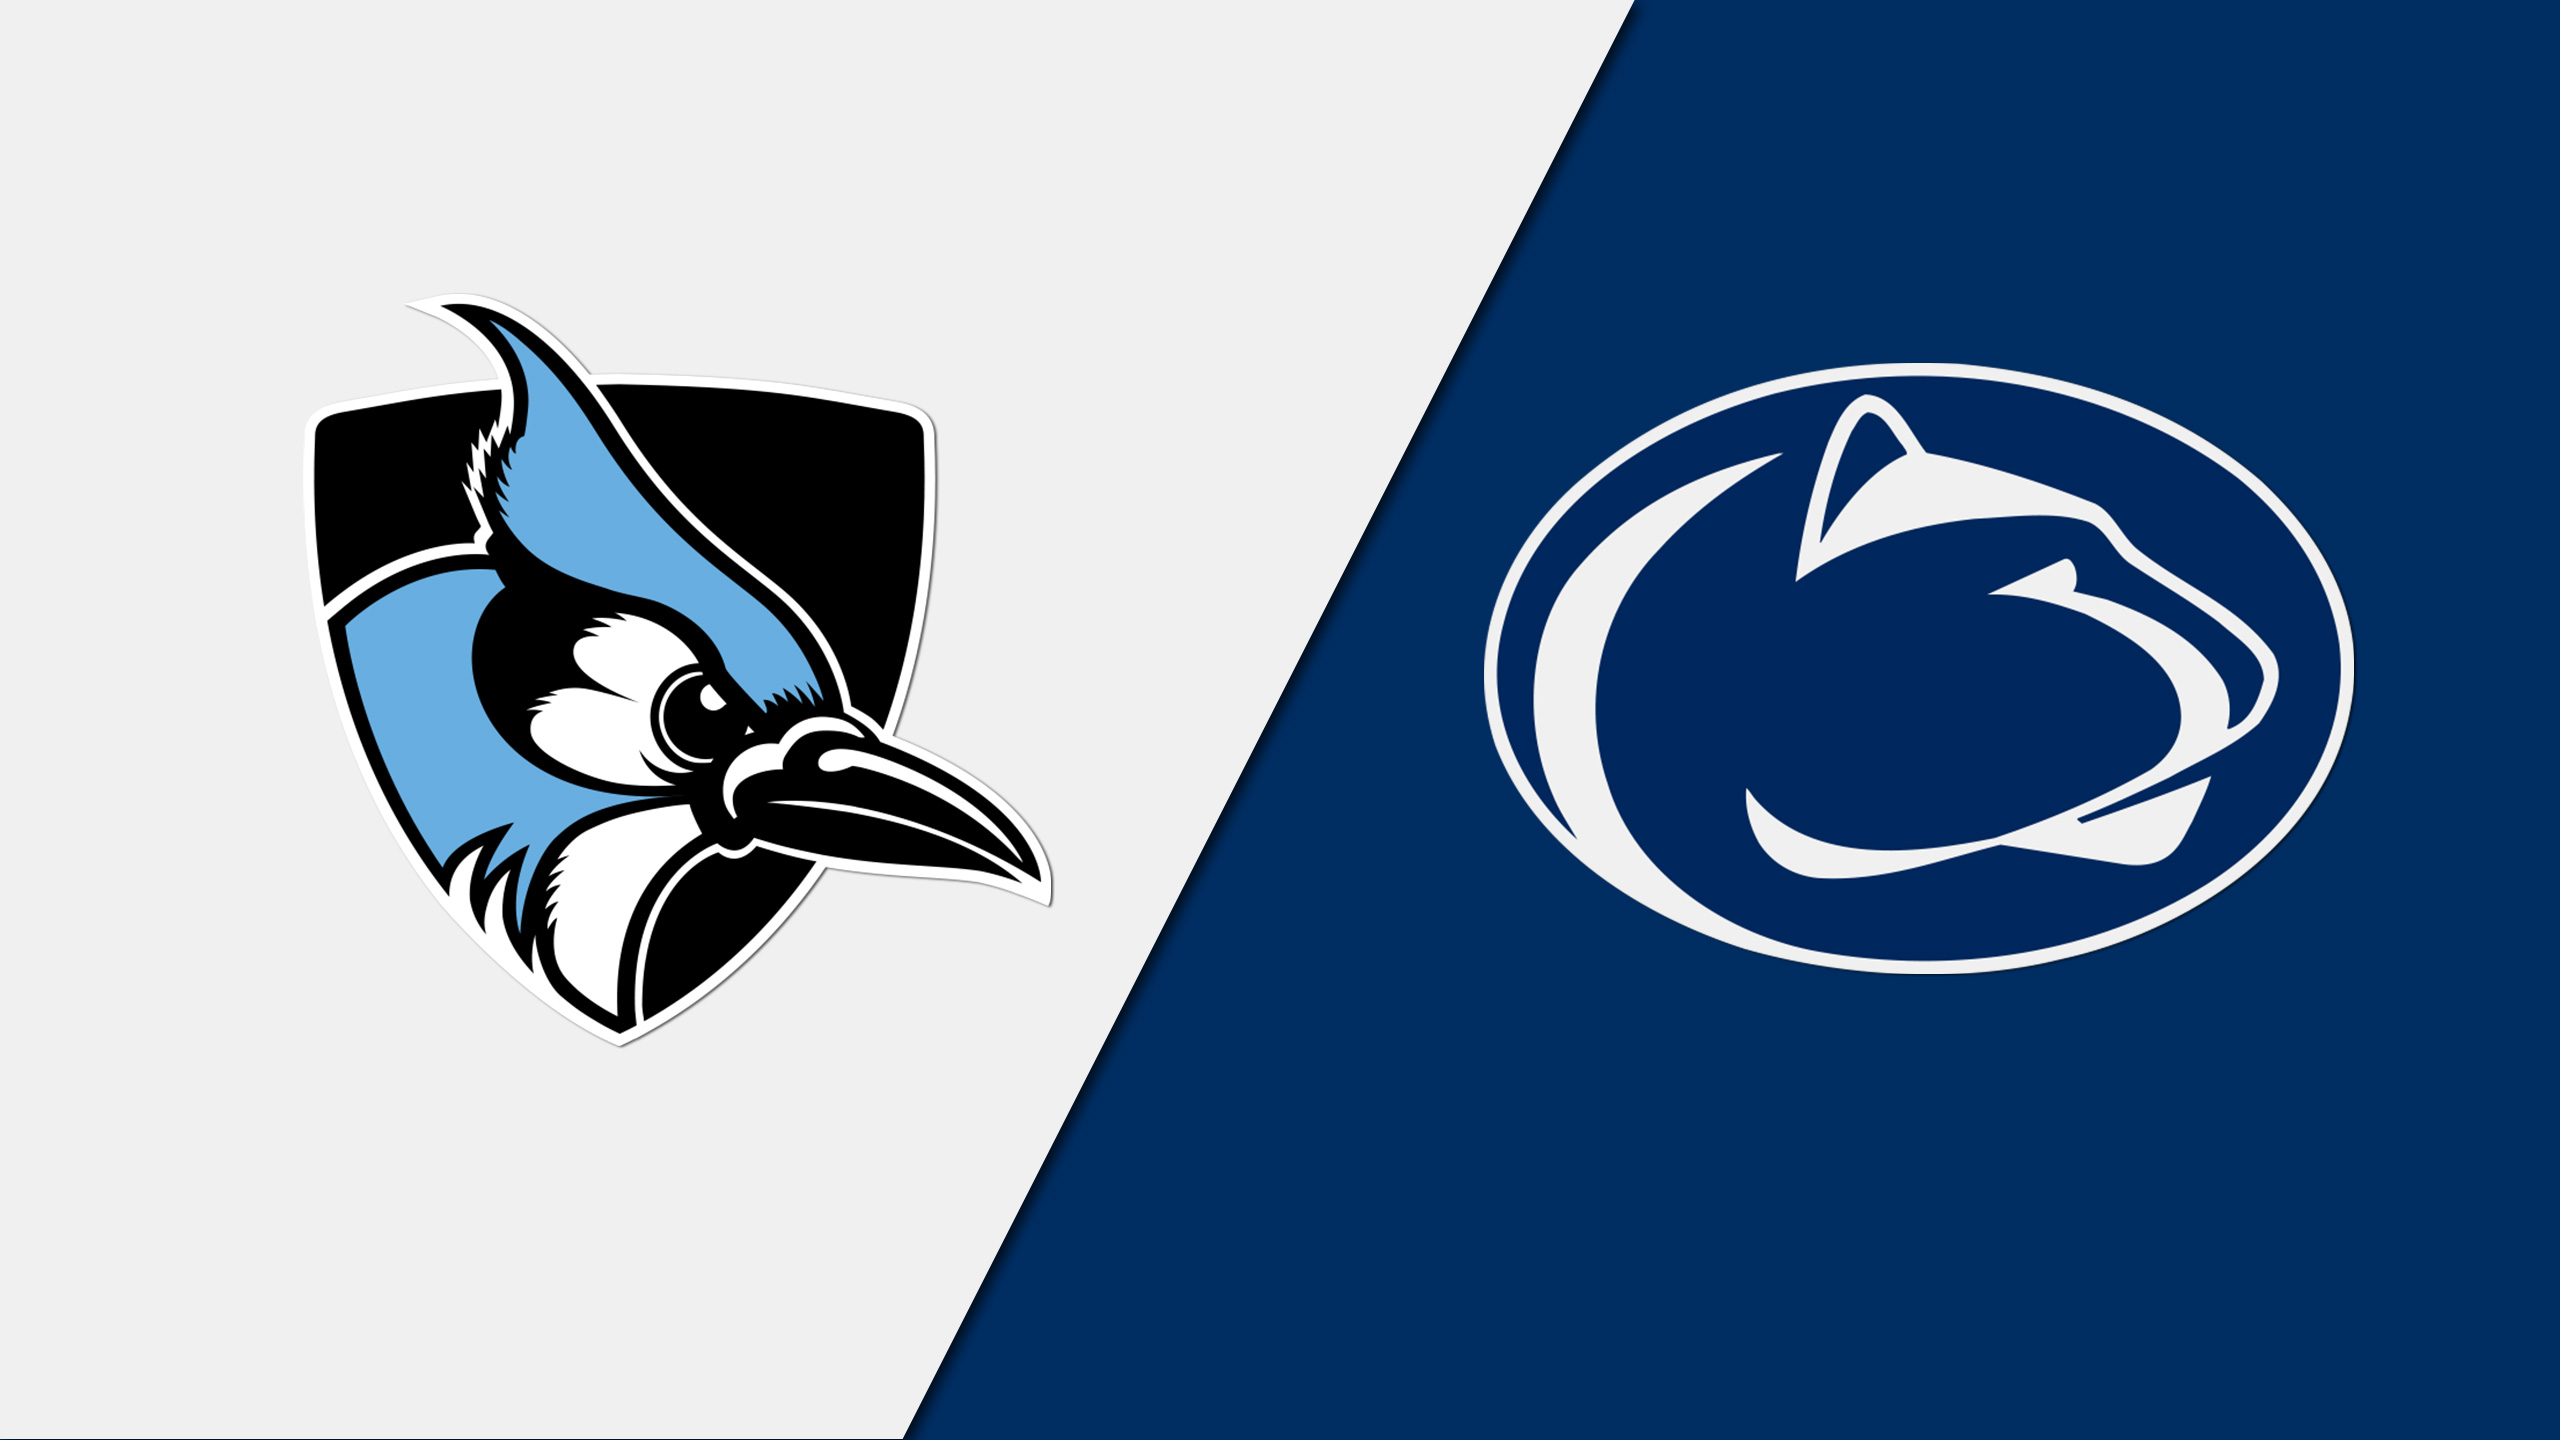 #19 Johns Hopkins vs. #1 Penn State (M Lacrosse)